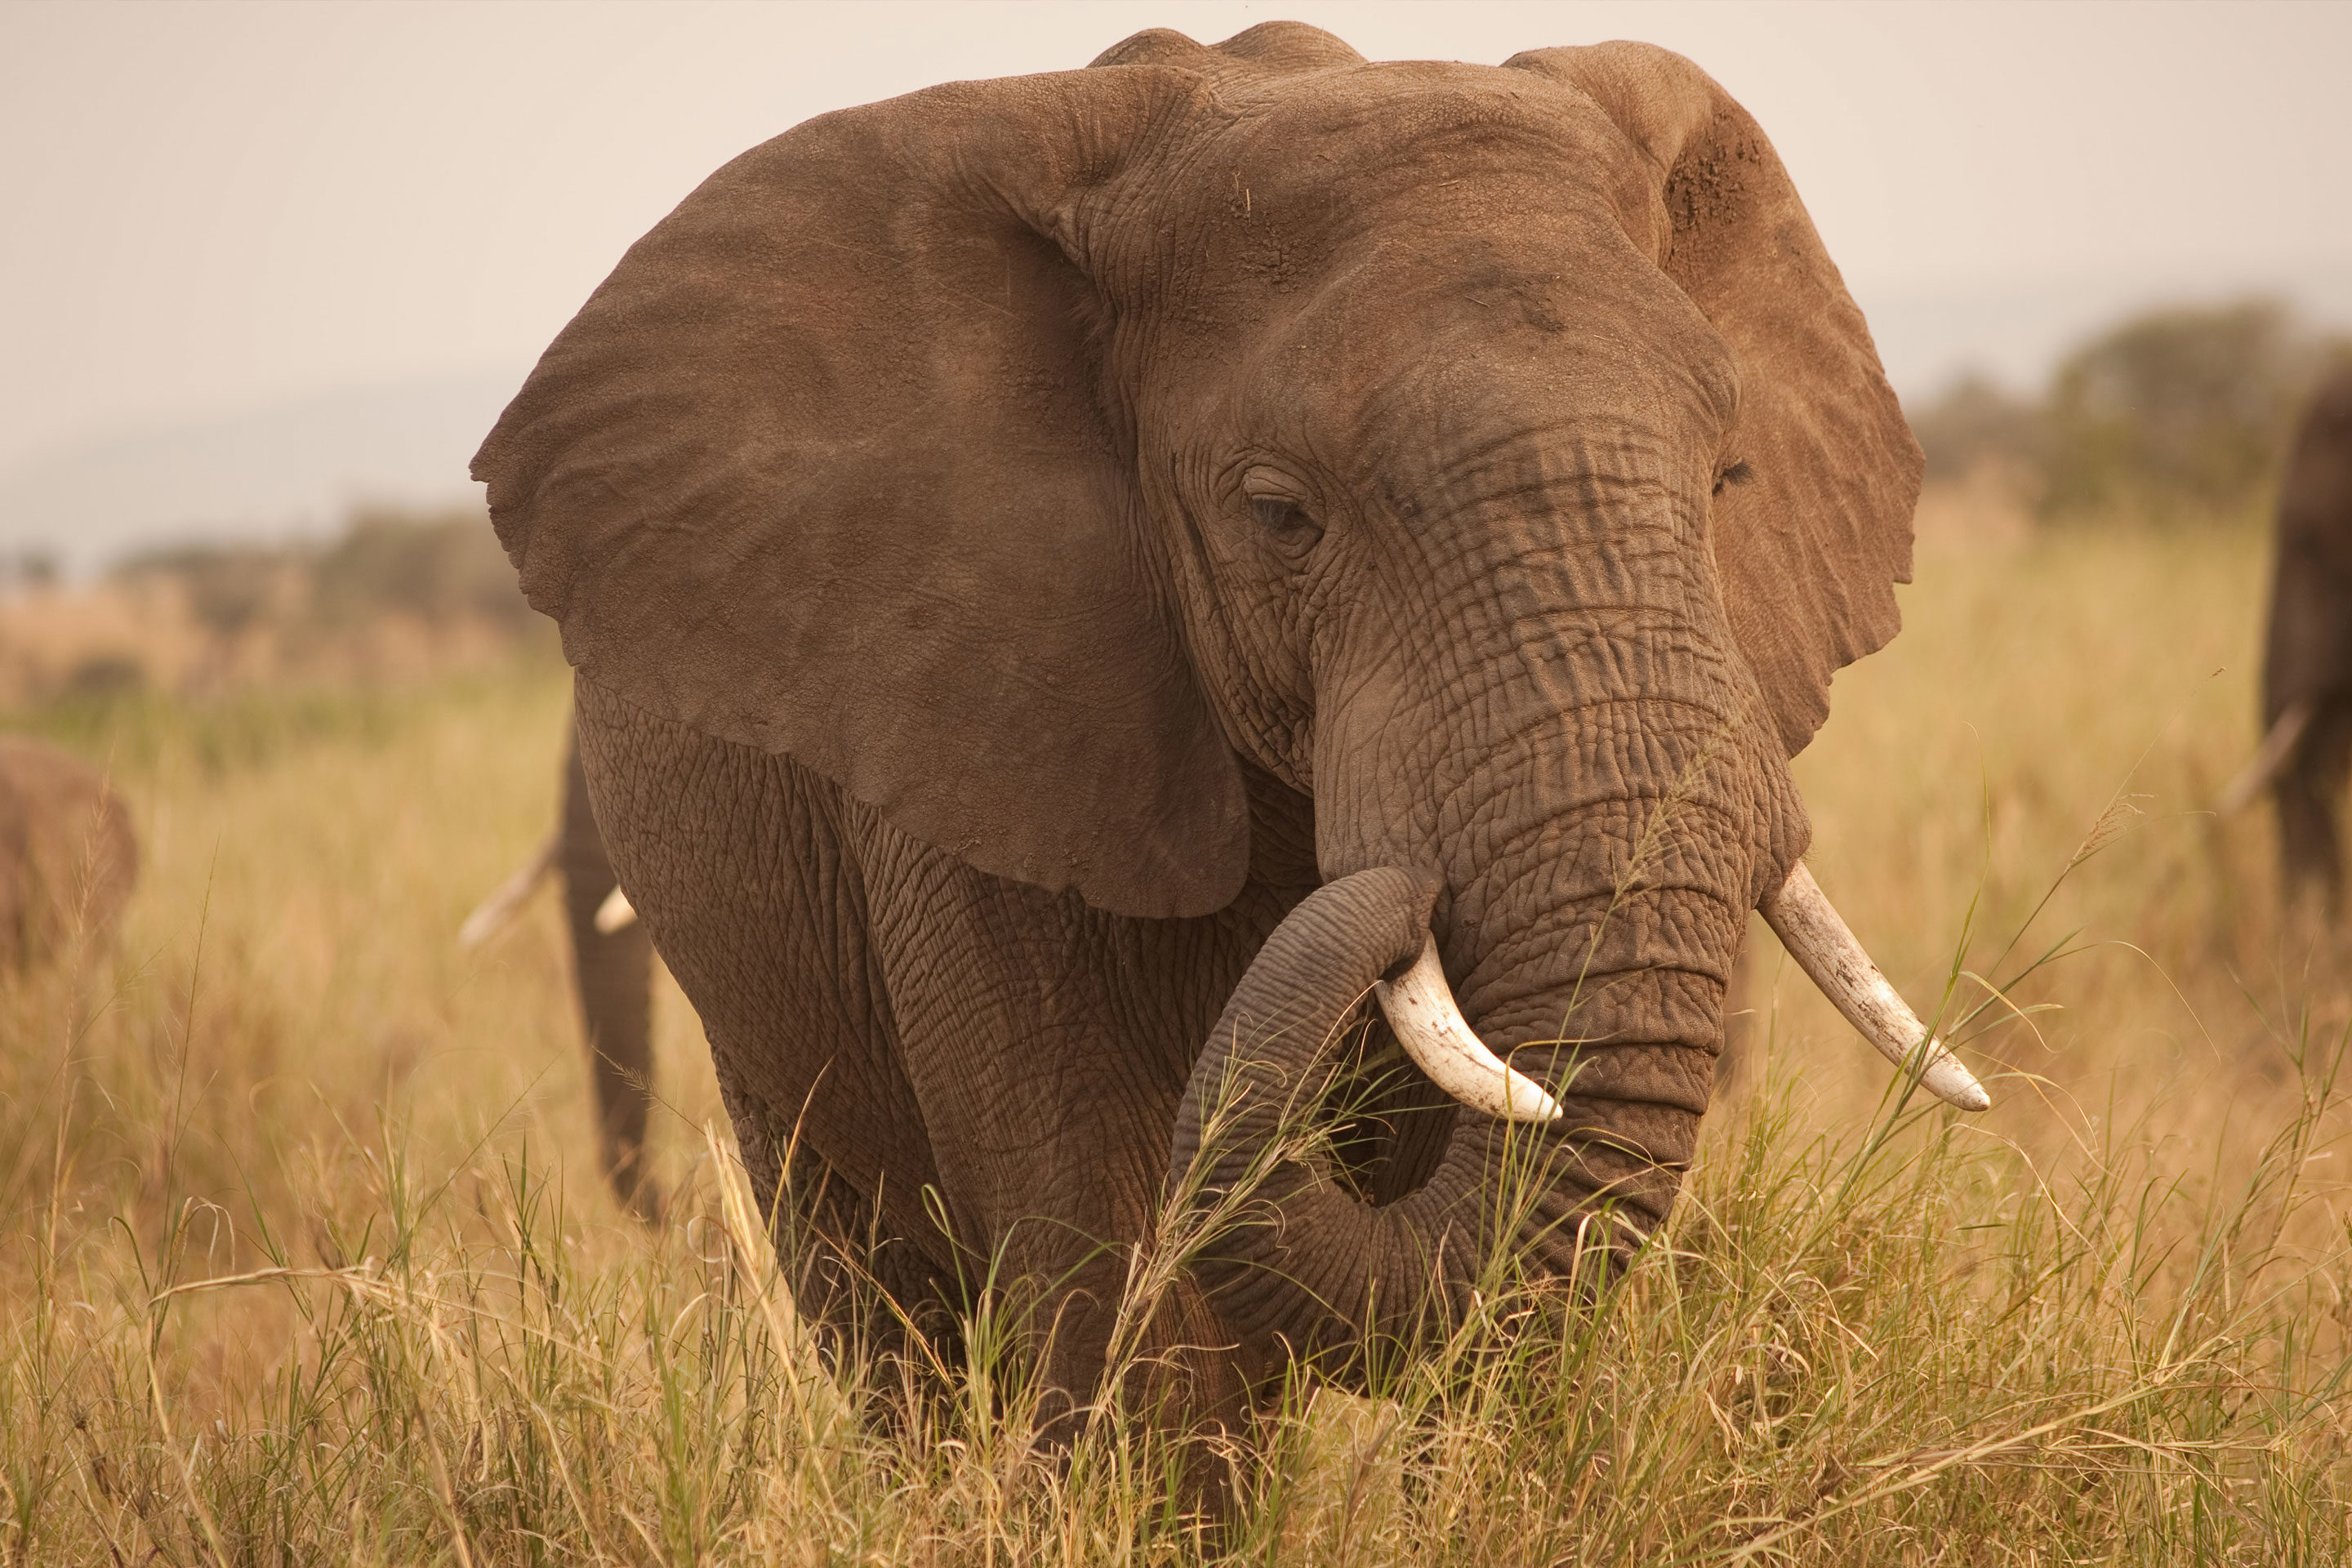 Scientists have discovered why elephants don't get cancer